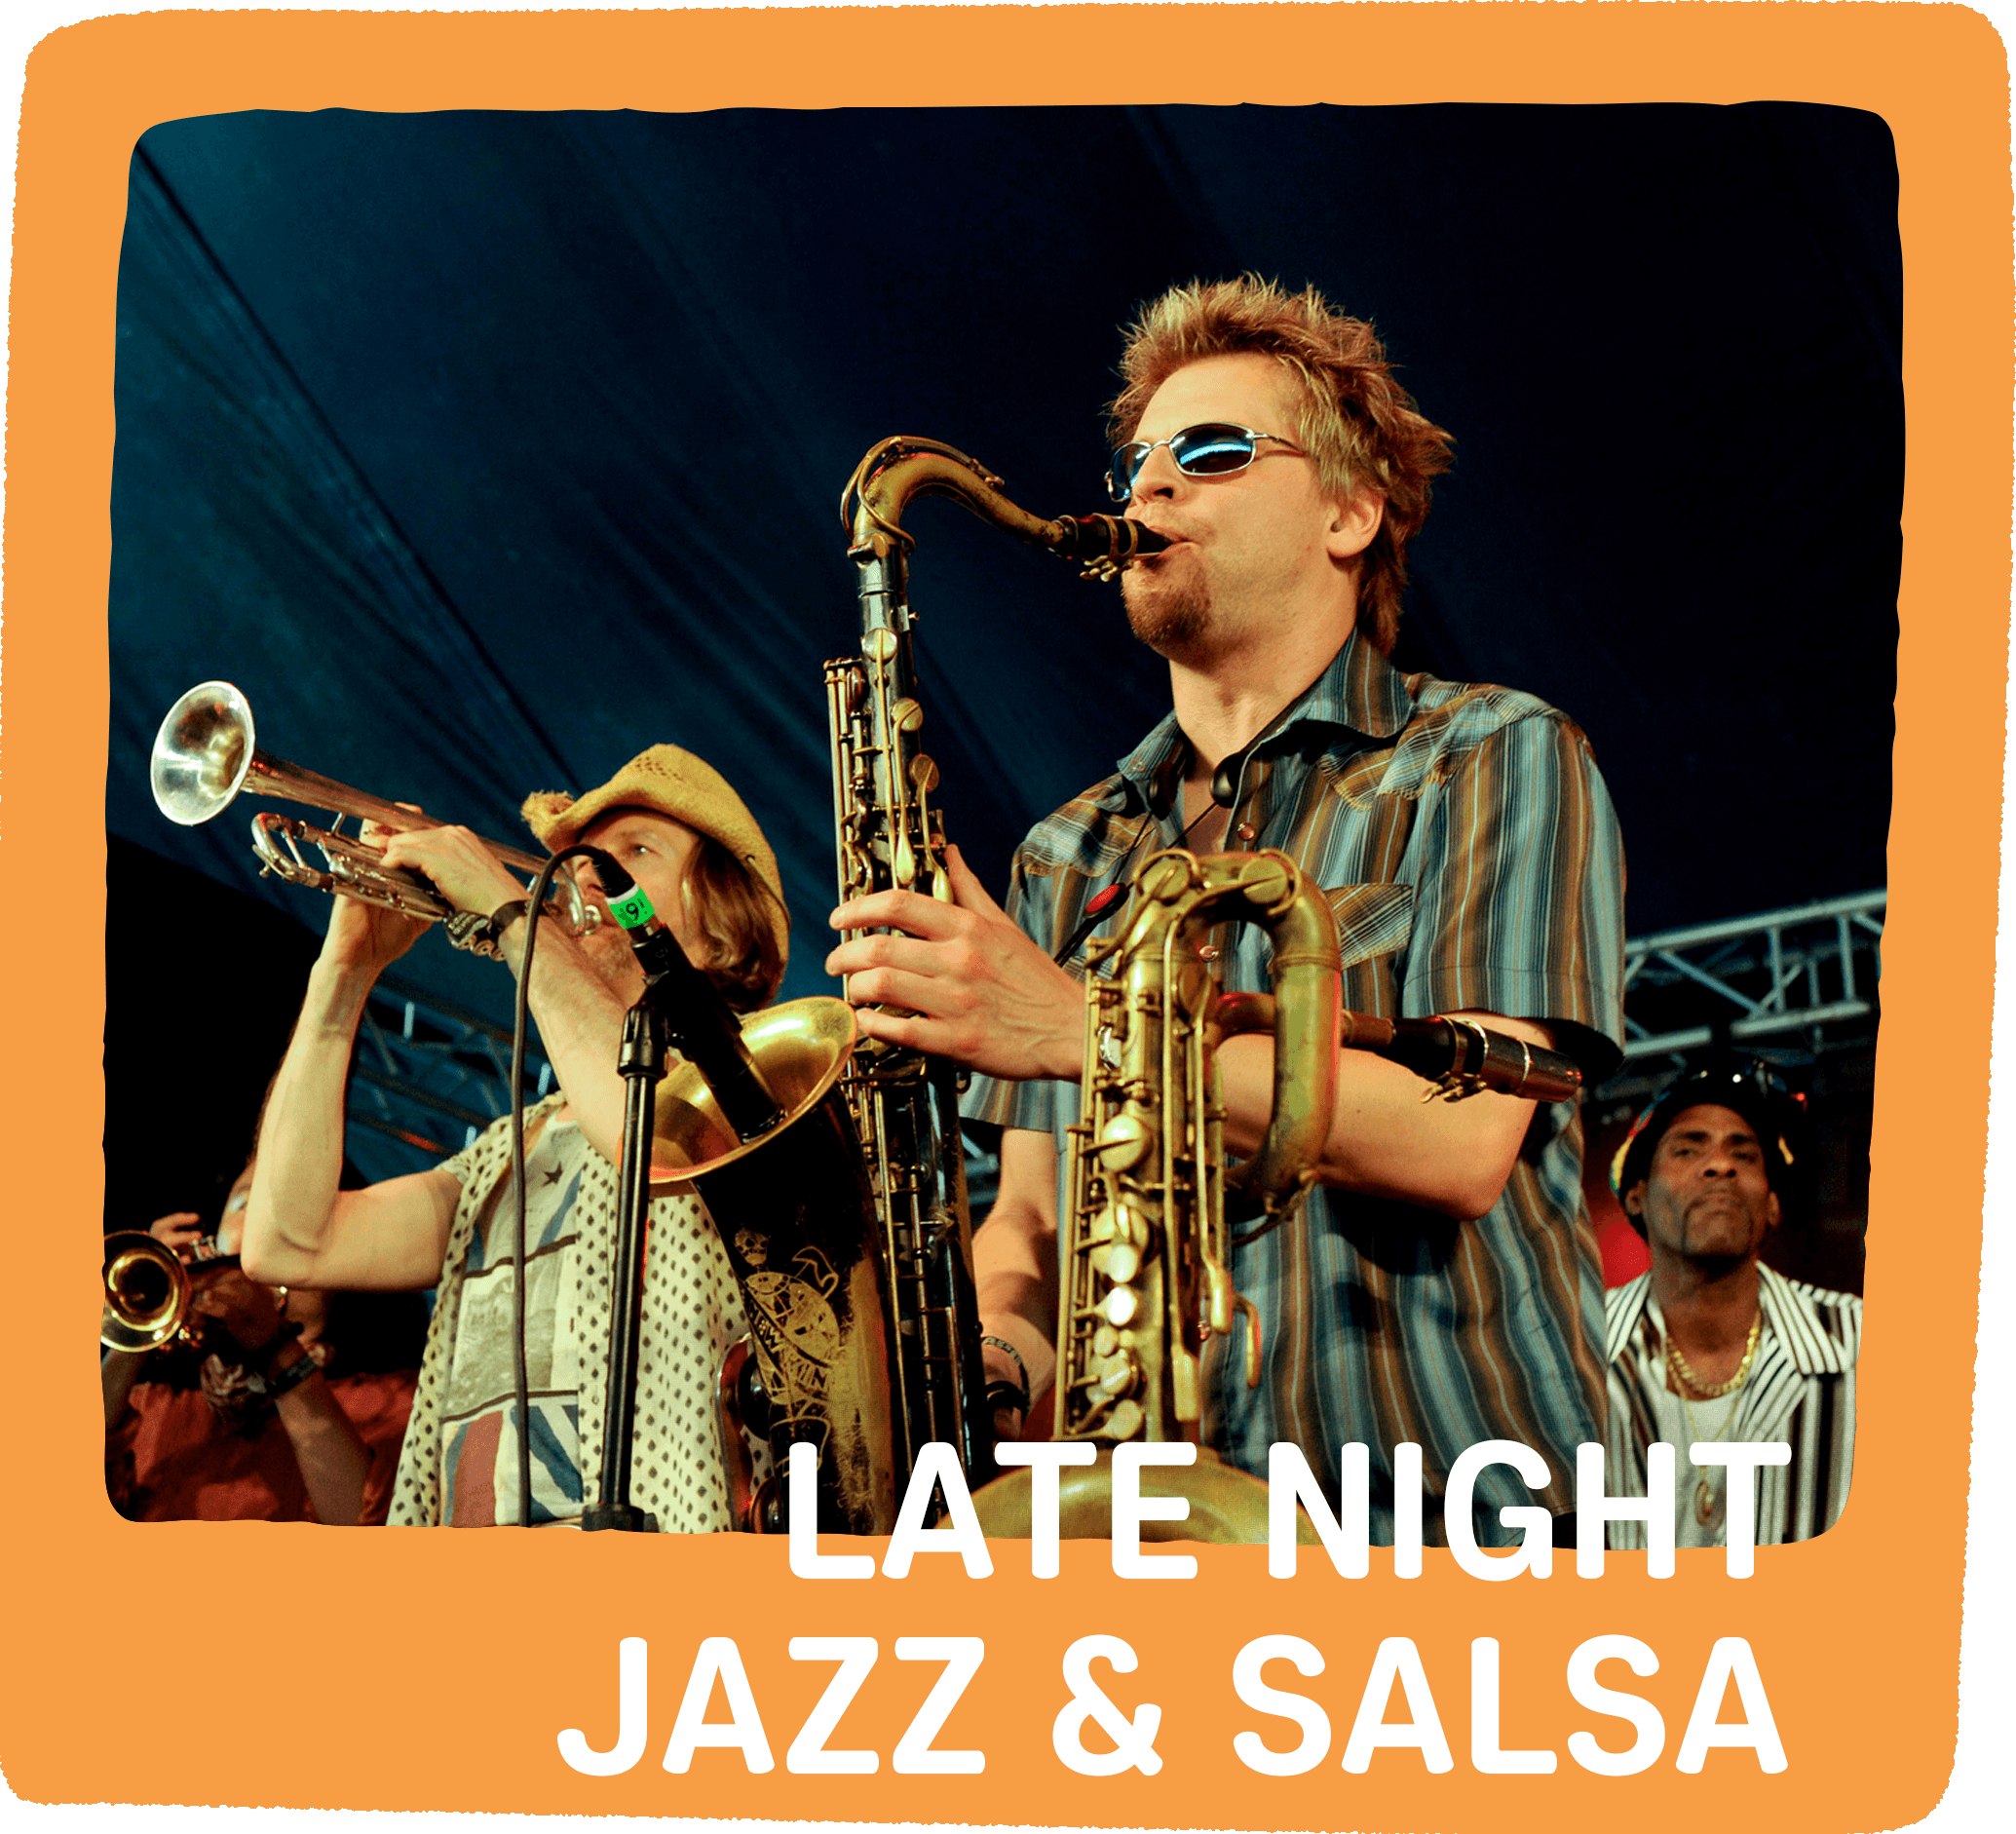 Jazz and Salsa